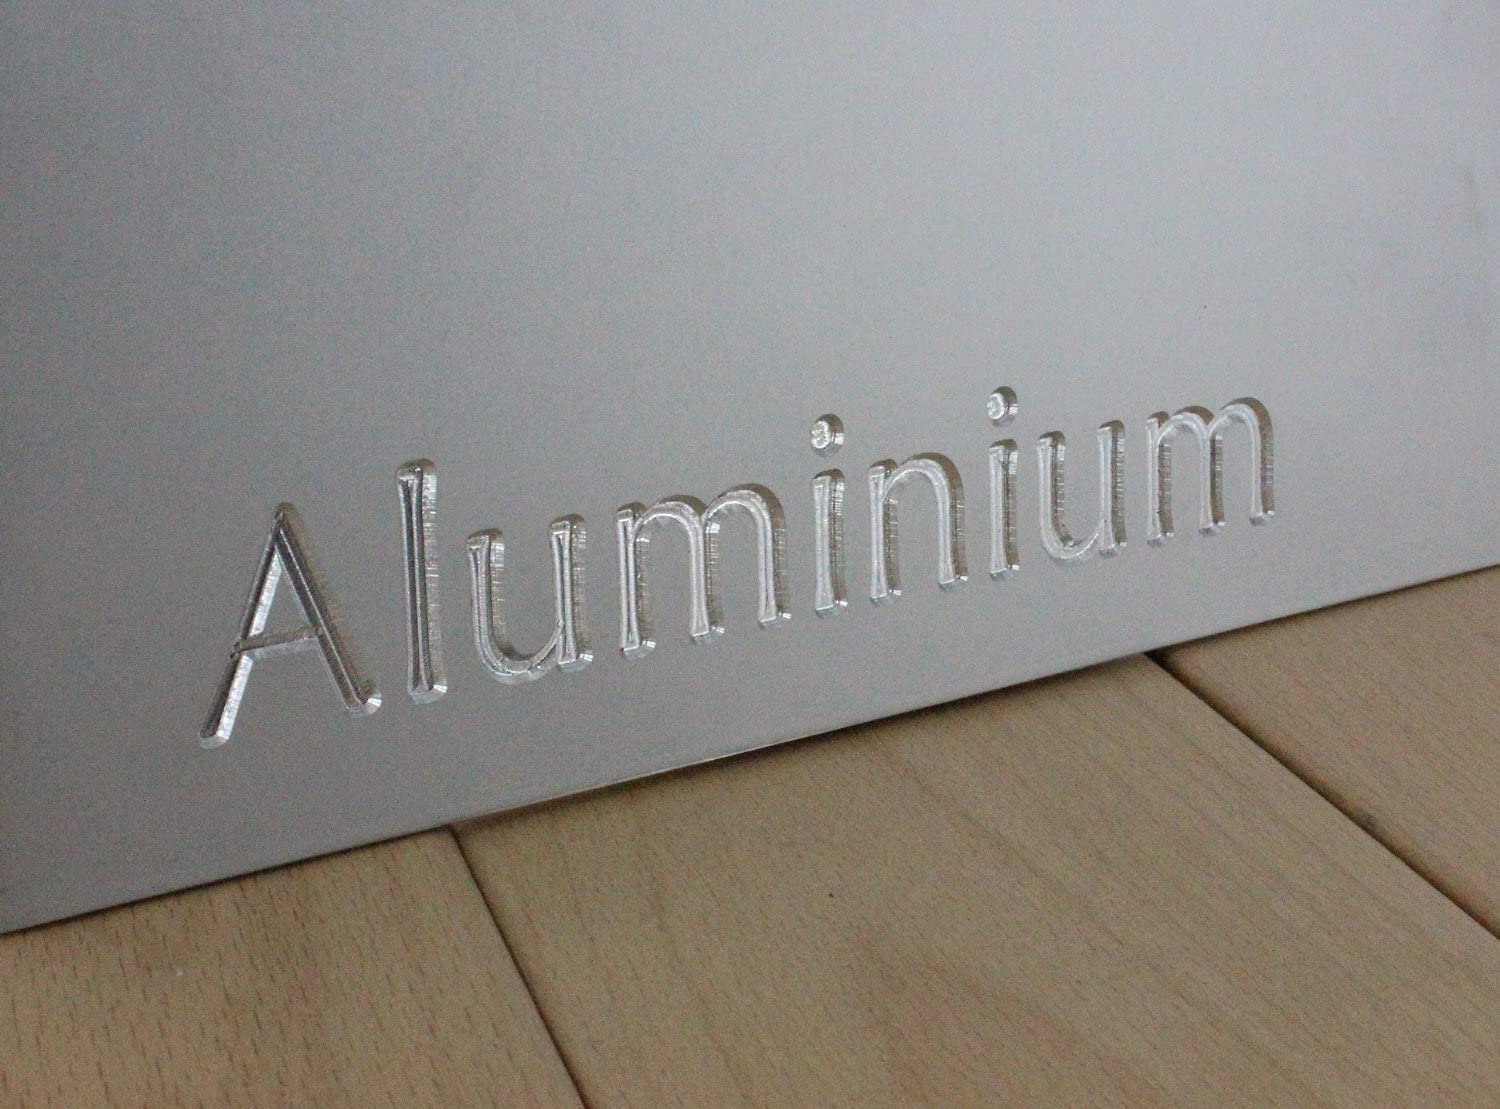 3.0mm Thick Aluminium Sheet Plate 23 sizes to choose from 300mm x 50mm